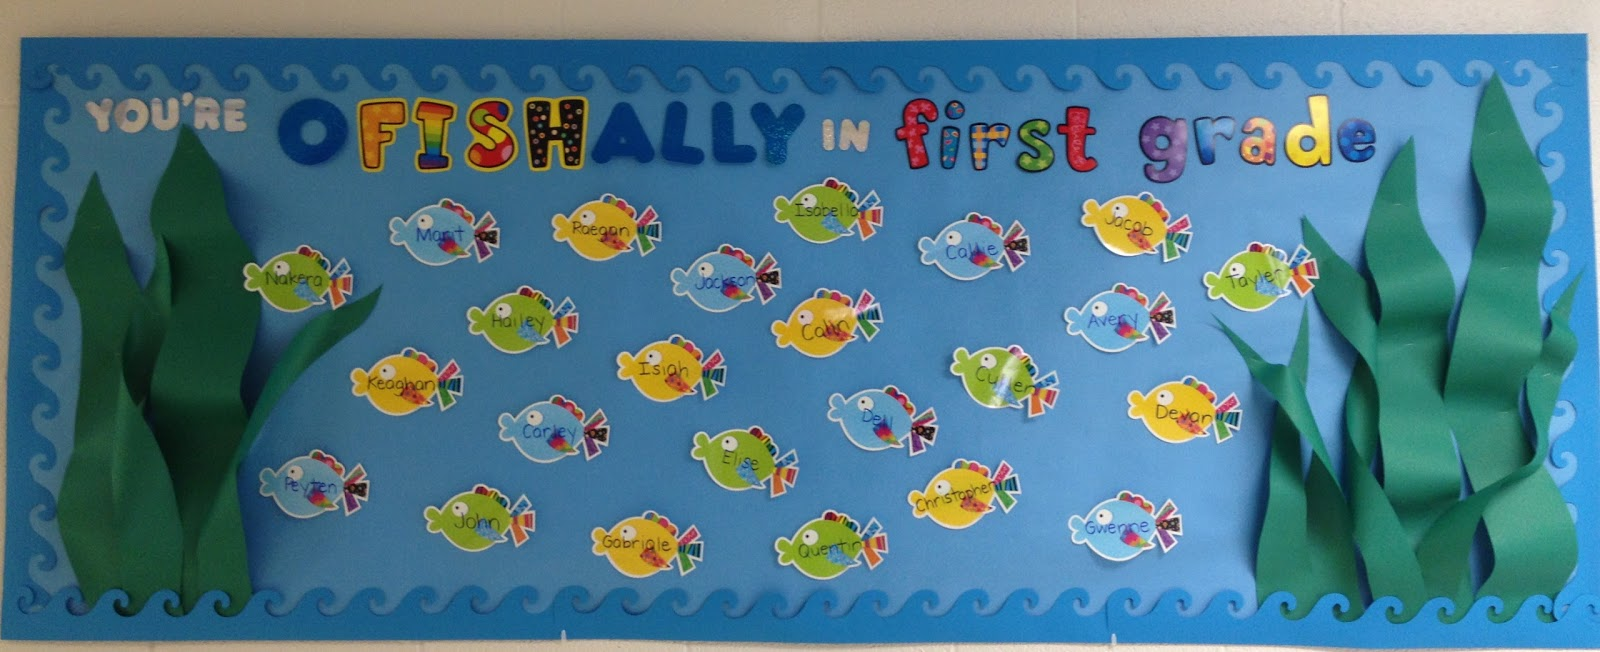 From reading to recess you 39 re o fish ally in first grade for Fish bulletin board